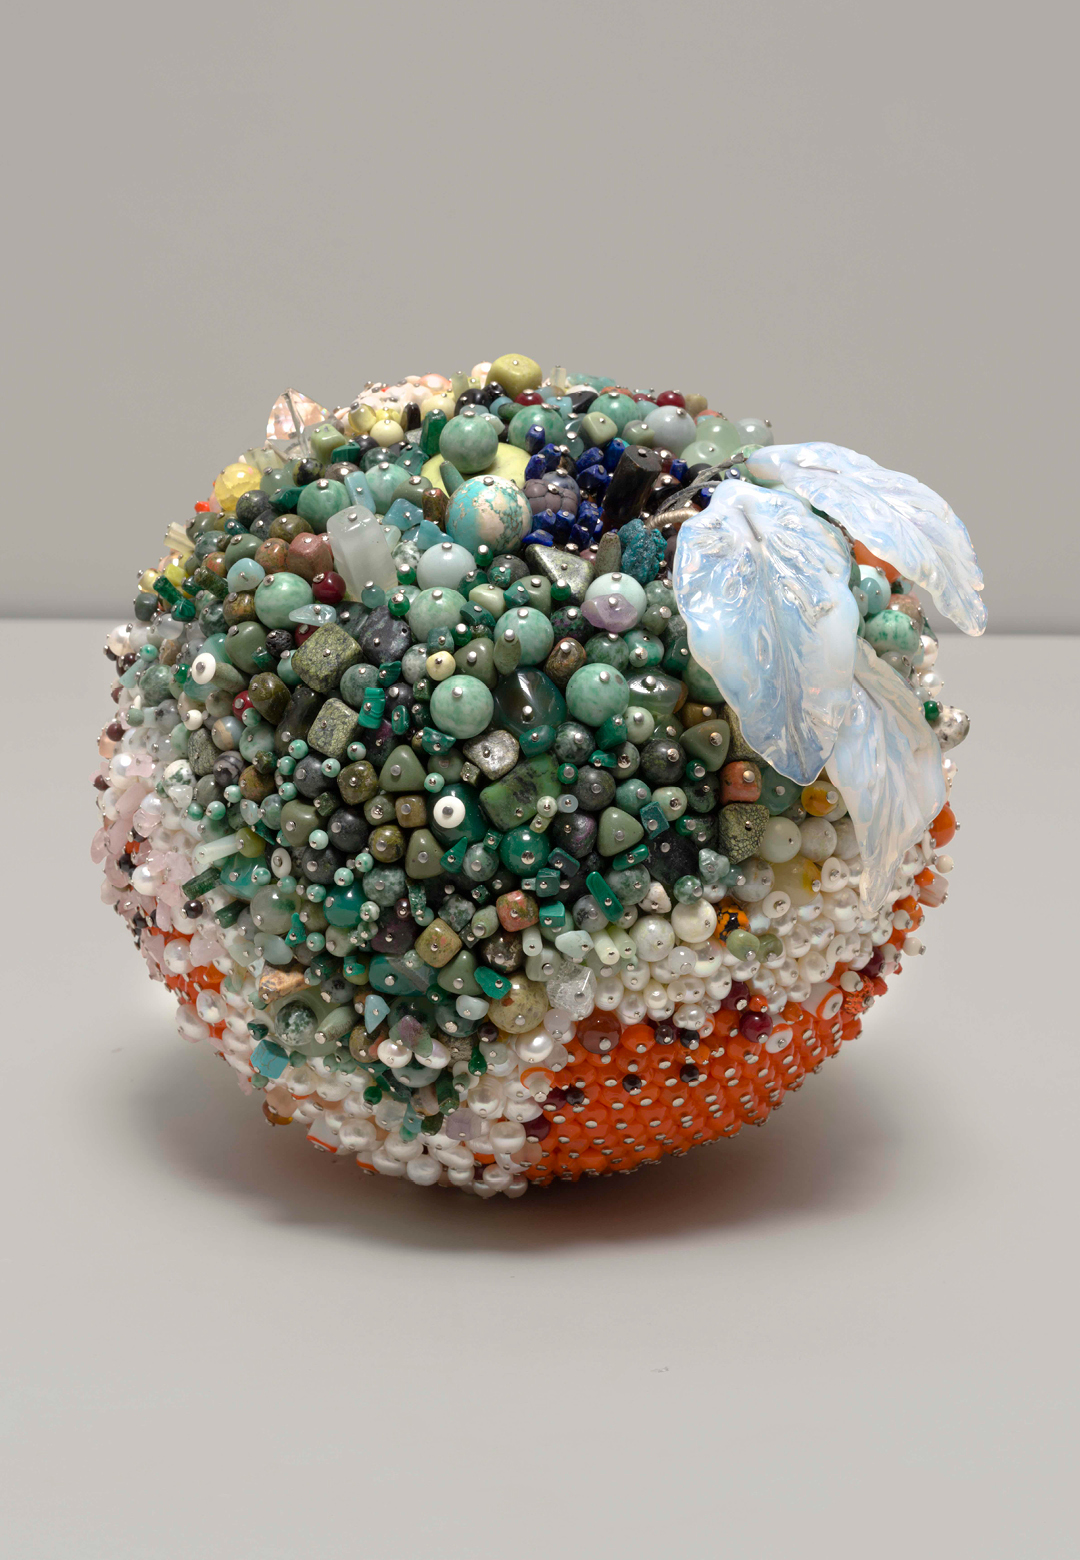 Kathleen Ryan, Serpentine Foam, Serpentine, smokey quartz, aventurine, Ching Hai jade, agate, marble, amazonite, magnesite, calcite, onyx, and other precious stones, 14.5 x 16.5 x 16.5, 2019 | Kathleen Ryan | STIRworld